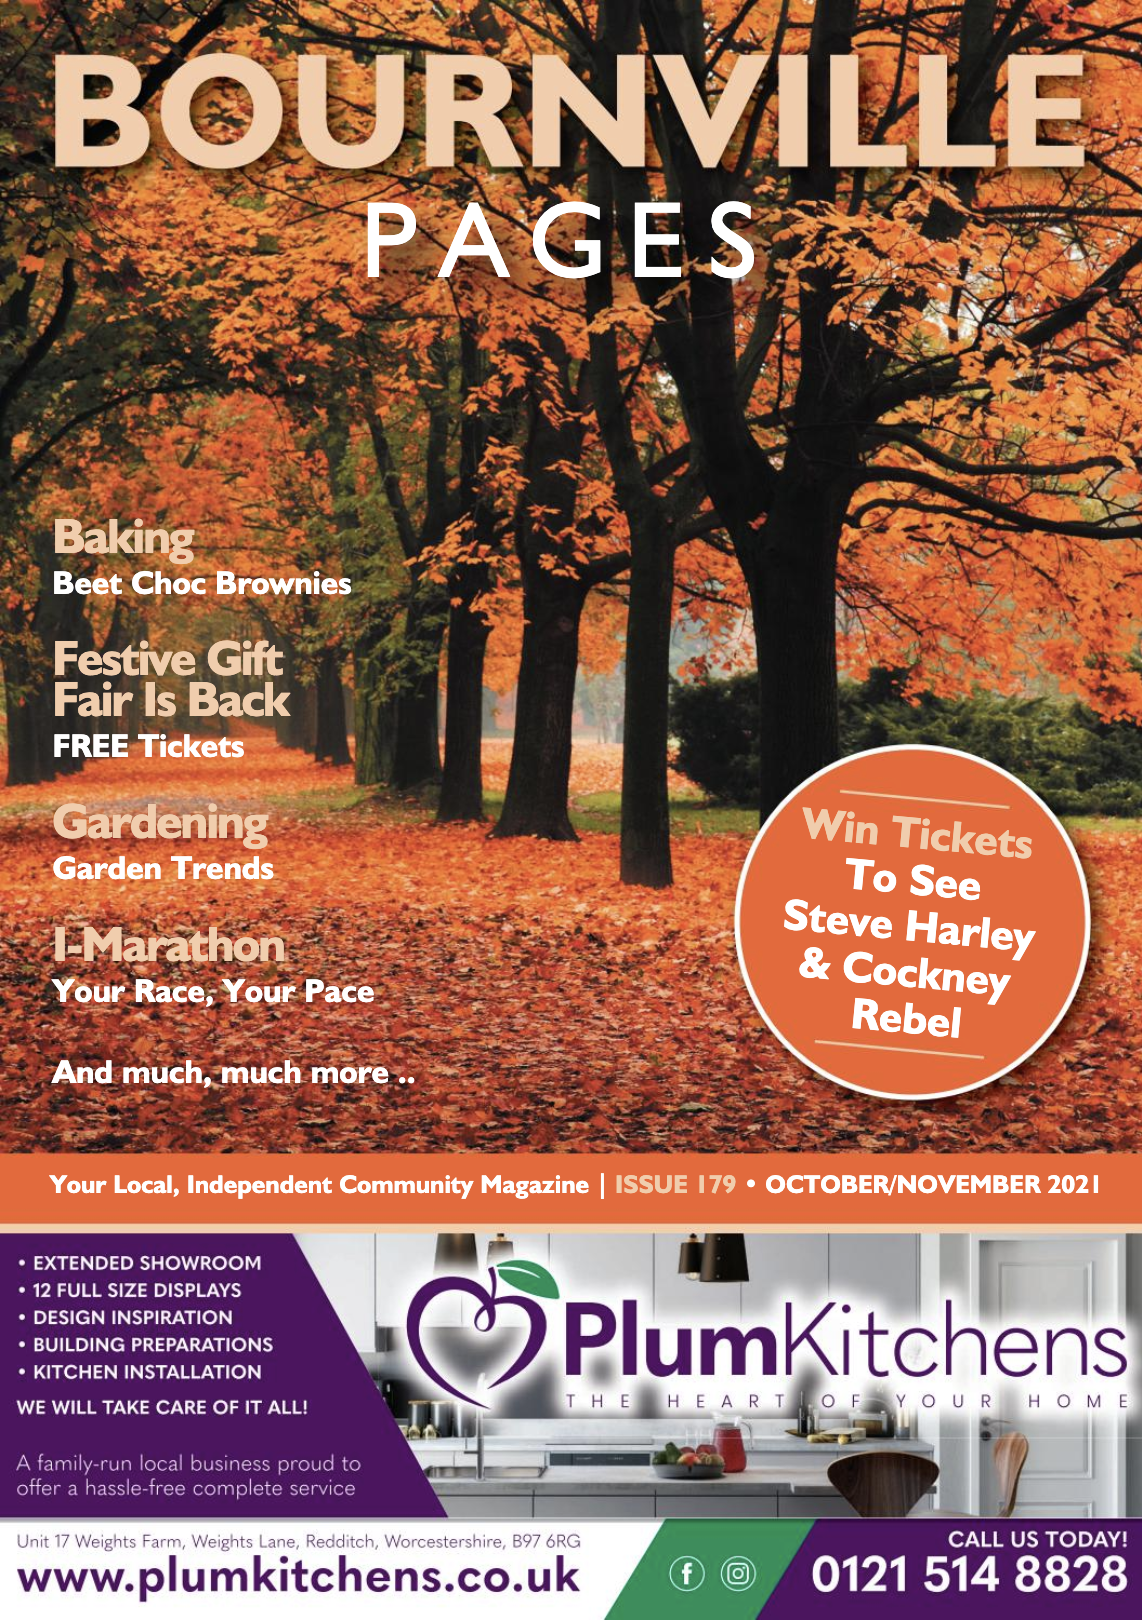 Bourneville Pages Magazine October 2021